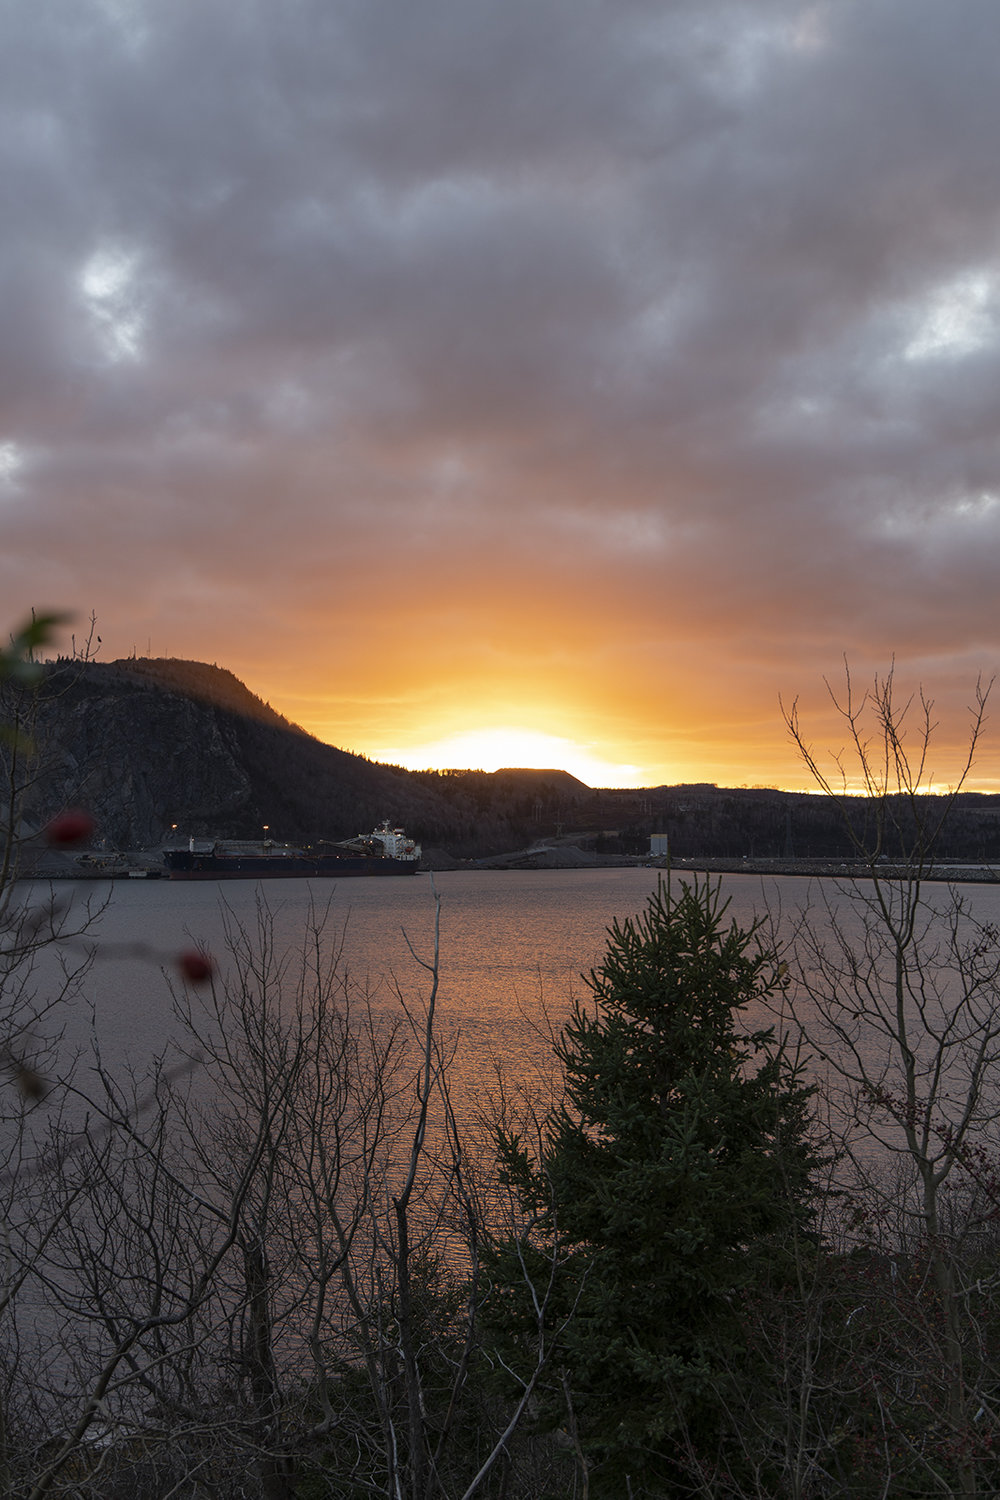 Canso-sunset-02-BRimages.ca